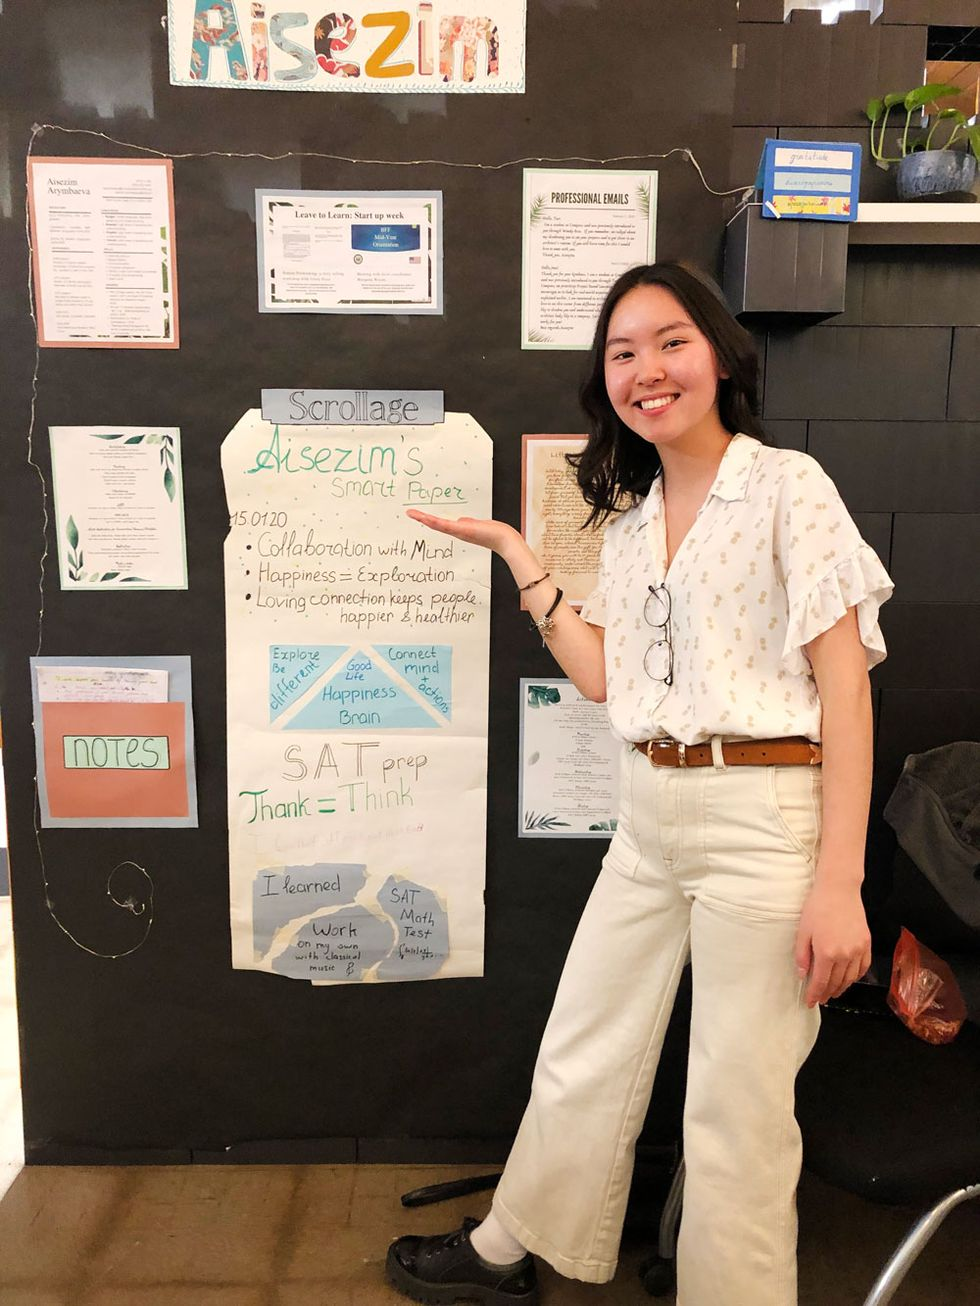 Aisezim had a beautiful display of her learning in her 11th grade experience.